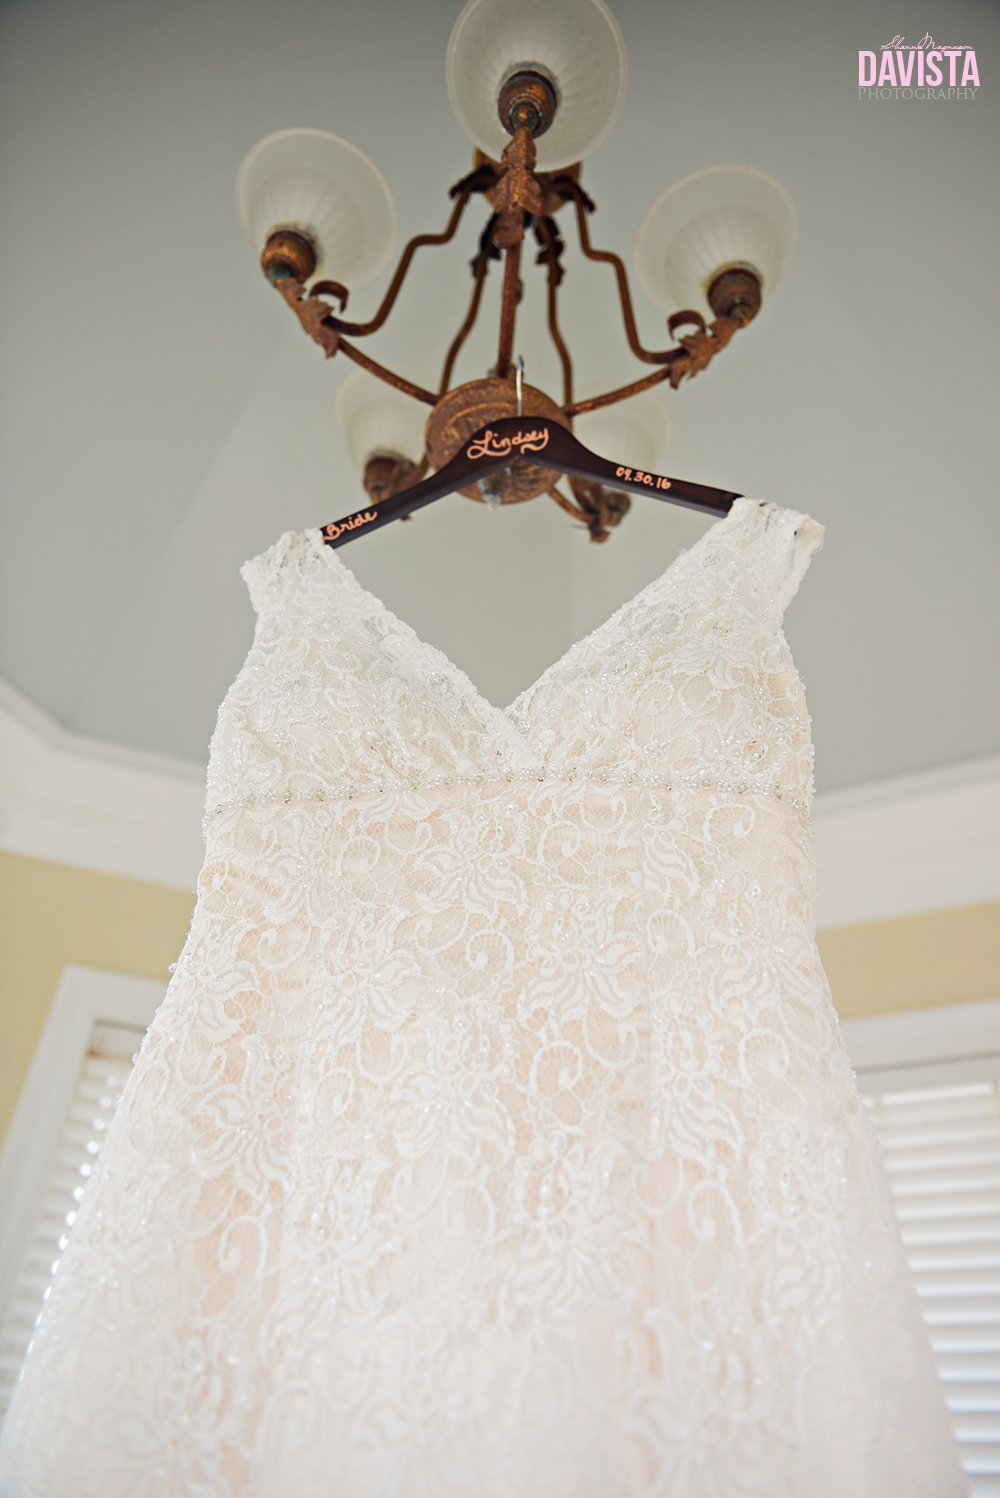 wedding dress and specialized hanger